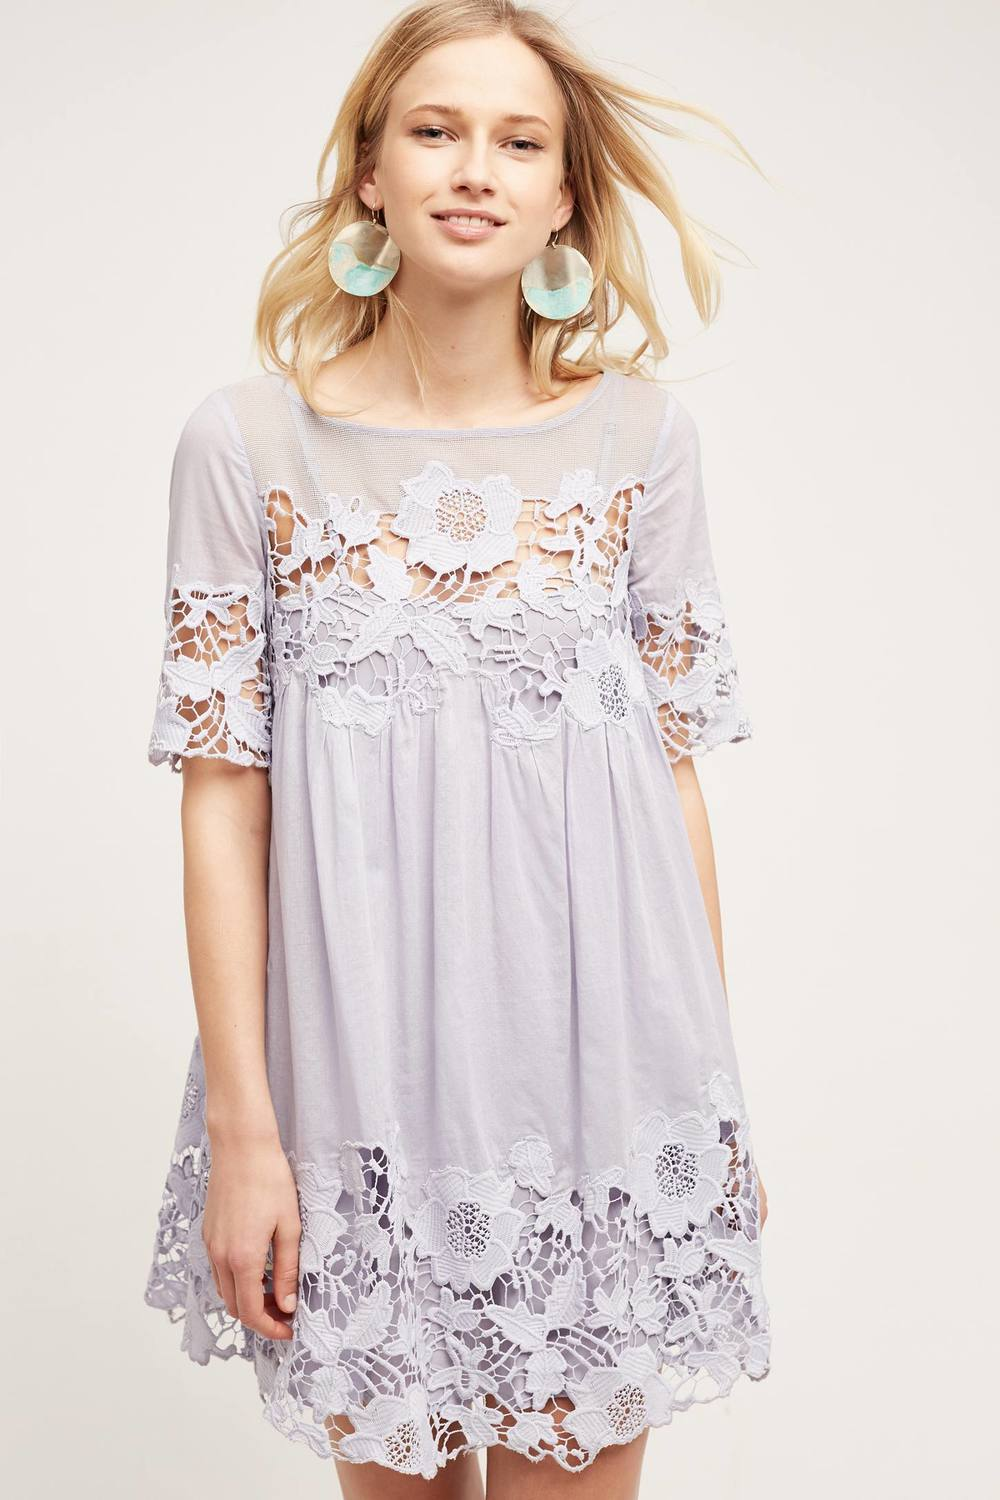 Magnolia Lace Dress. Anthropologie. $168.